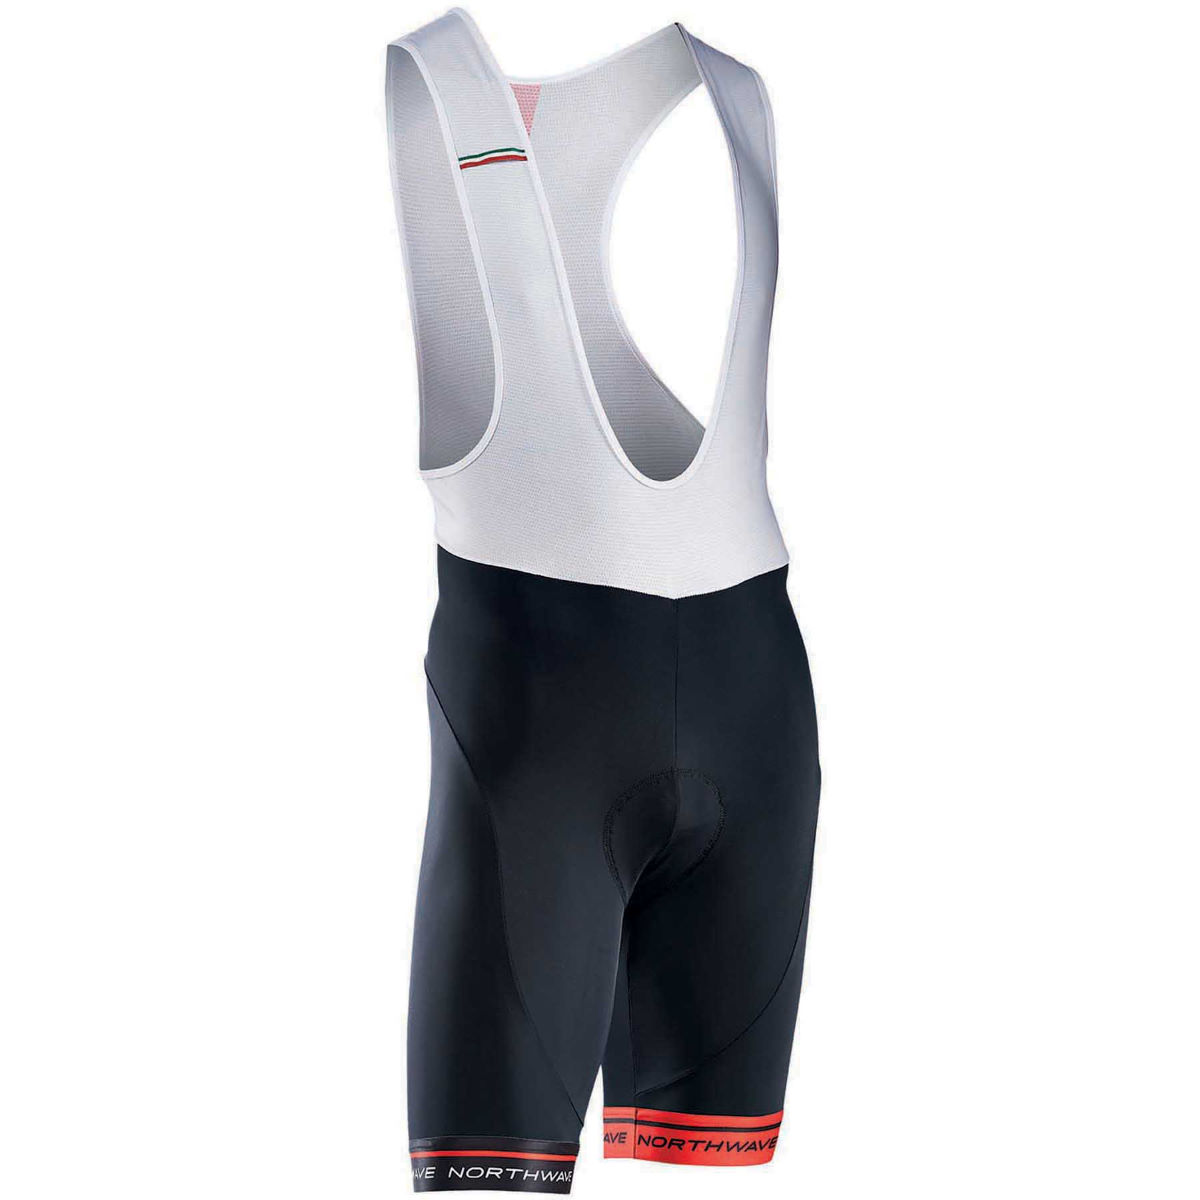 Northwave Kids Logo 3 Bib Shorts - 7-8 years Noir/Rouge Cuissards en lycra